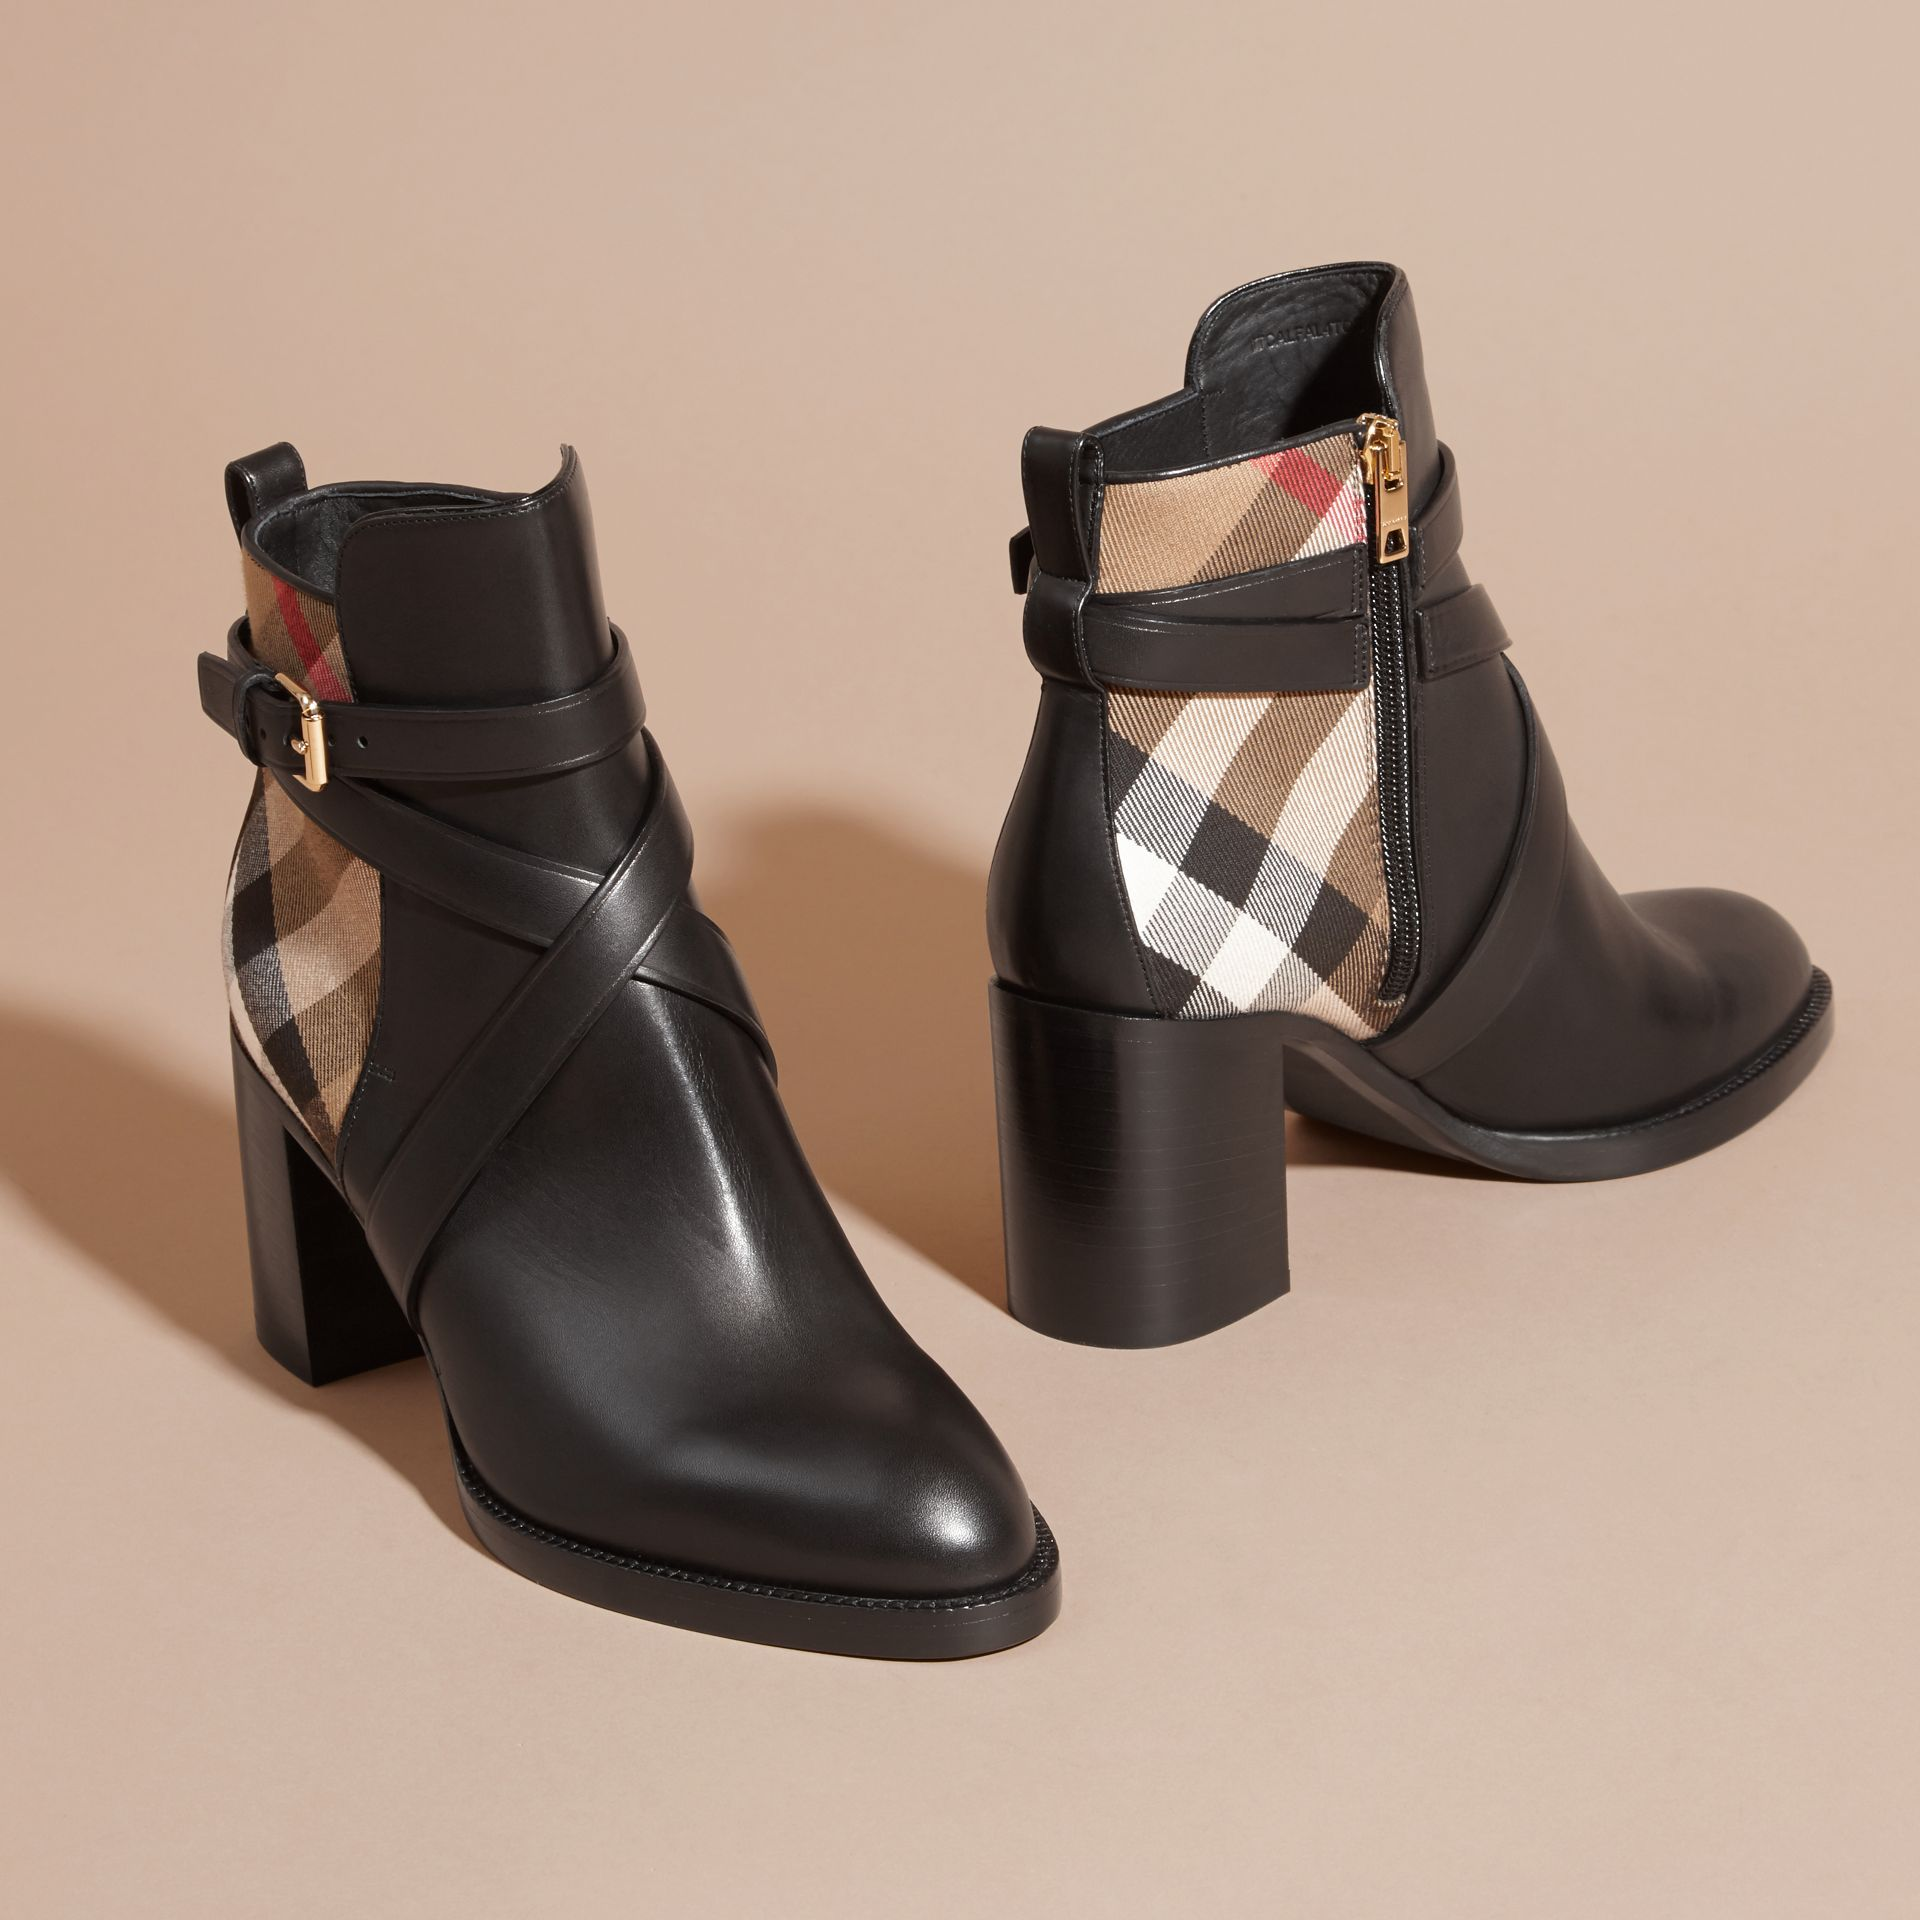 House Check and Leather Ankle Boots in Black - Women | Burberry Hong Kong - gallery image 2